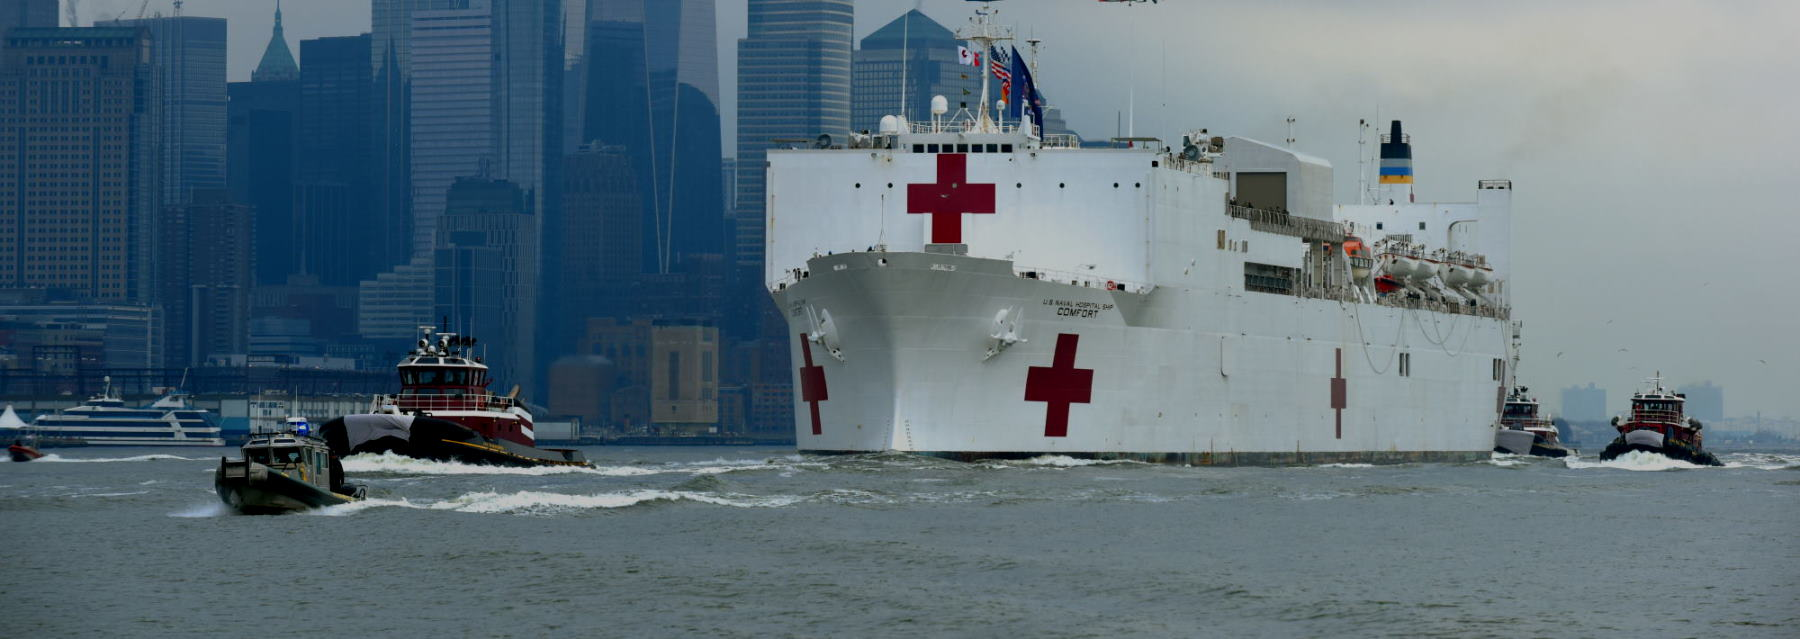 Coast Guard assets, along with New York Police Department and New York Fire Department assets, provide a security escort for the USNS Comfort arrival into New York Harbor, March 30, 2020